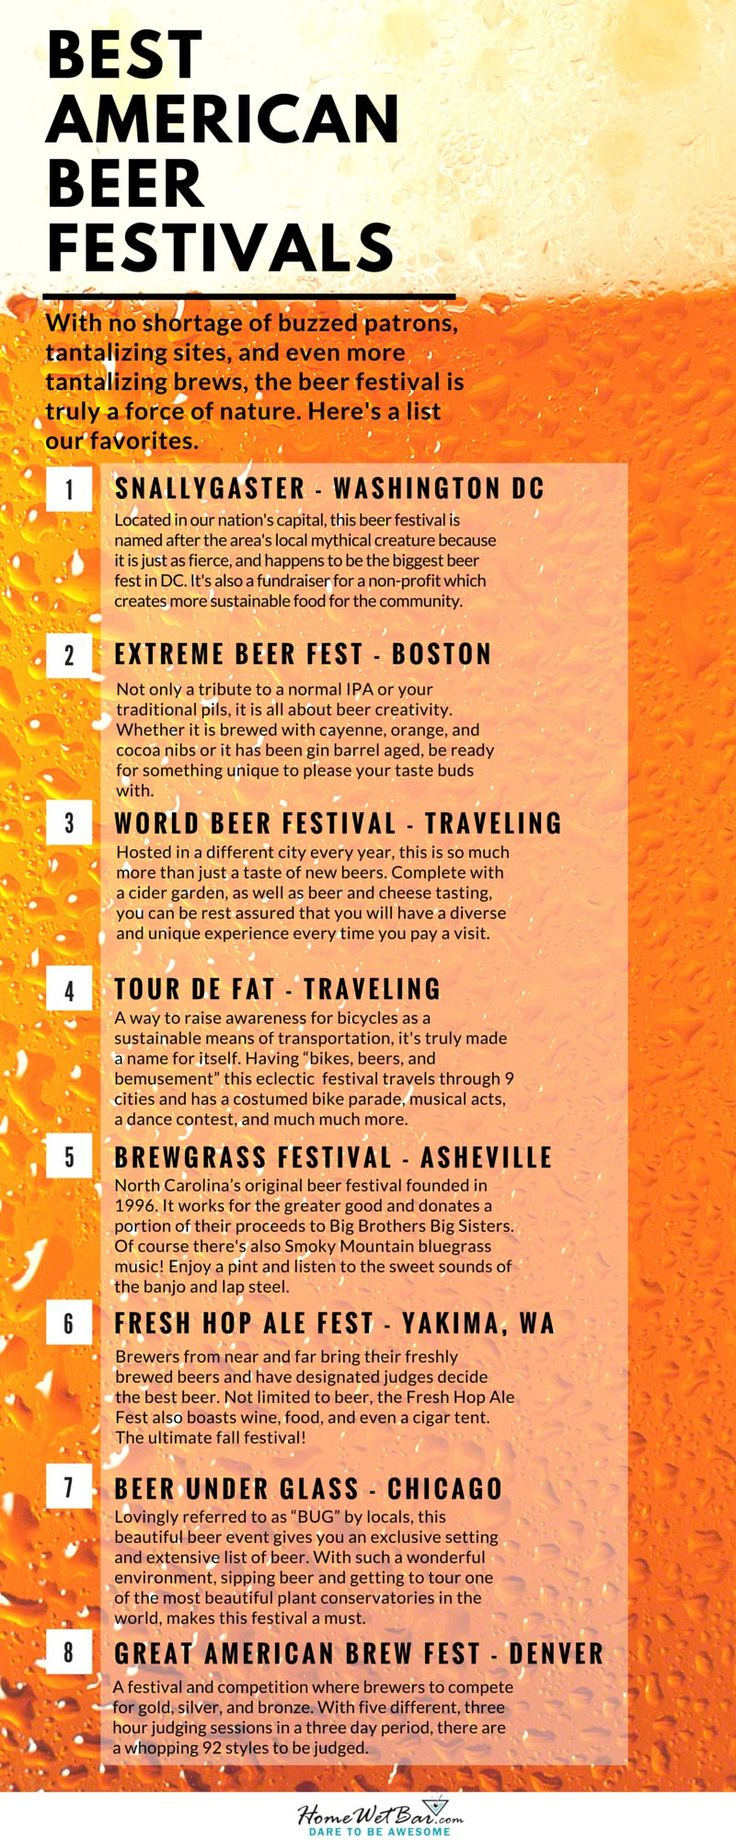 Best American Beer Festivals Infographic #SouthernRecipeSmallBatch